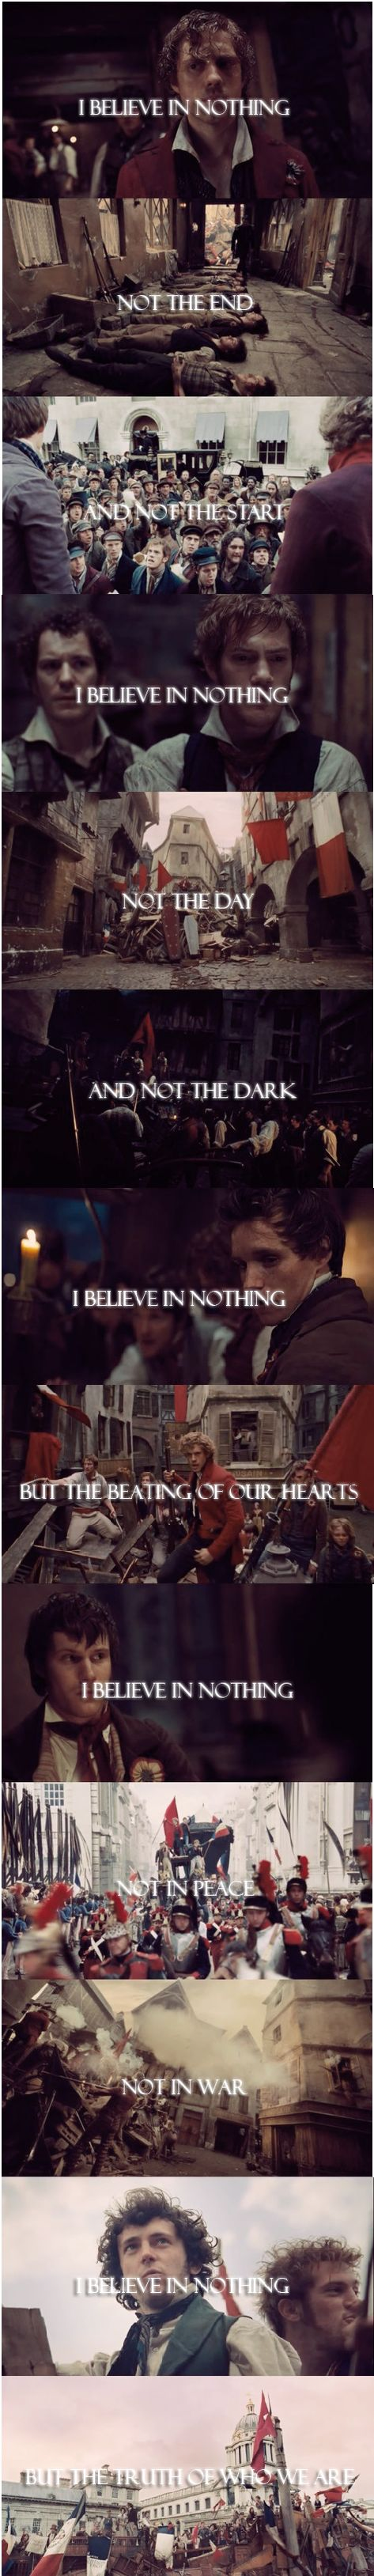 100 Suns, 30 Seconds to Mars and Les Mis. This just screams Grantaire.